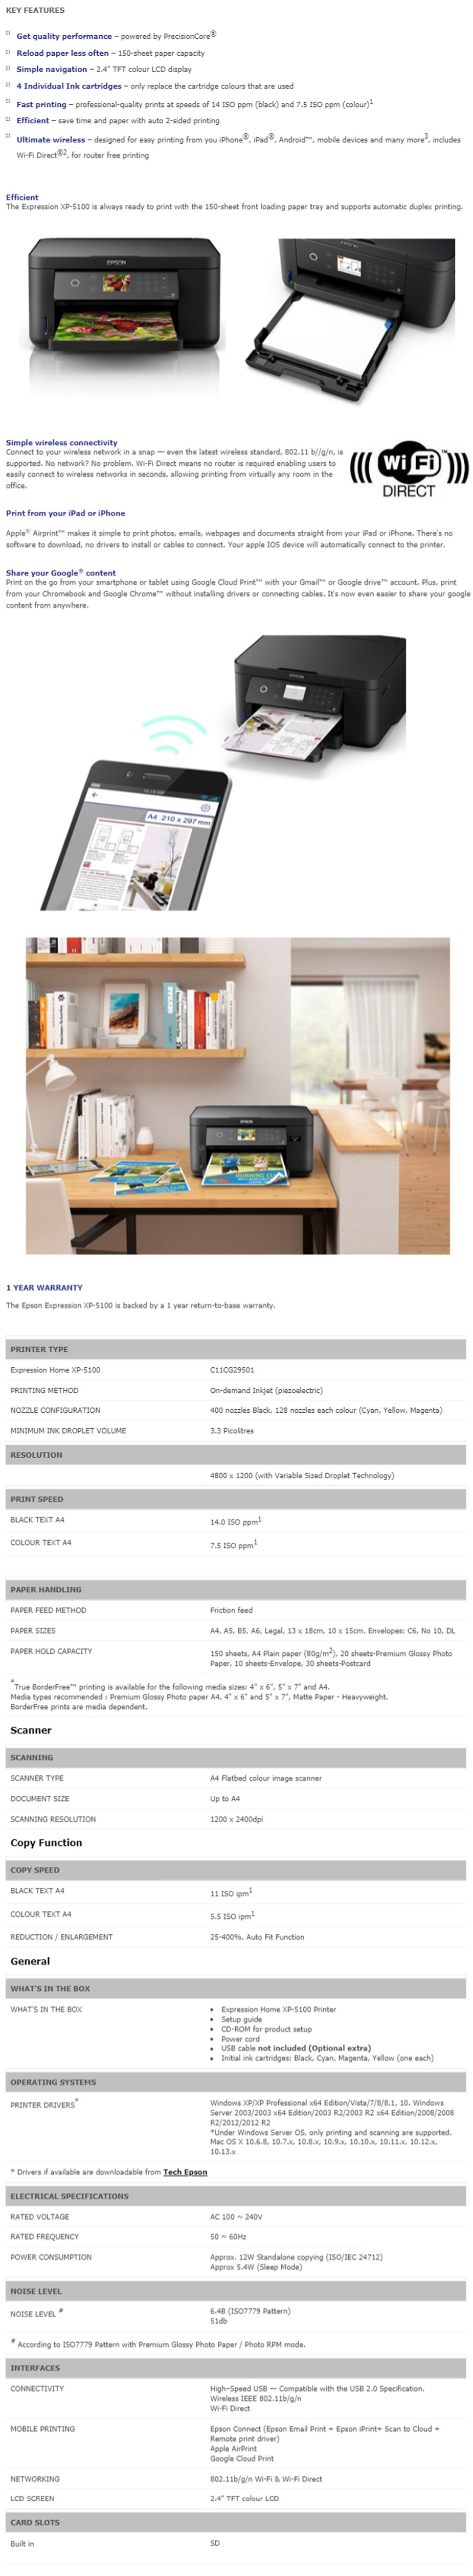 Epson Expression Home XP-5100 Colour Multifunction Inkjet Printer - Overview 1